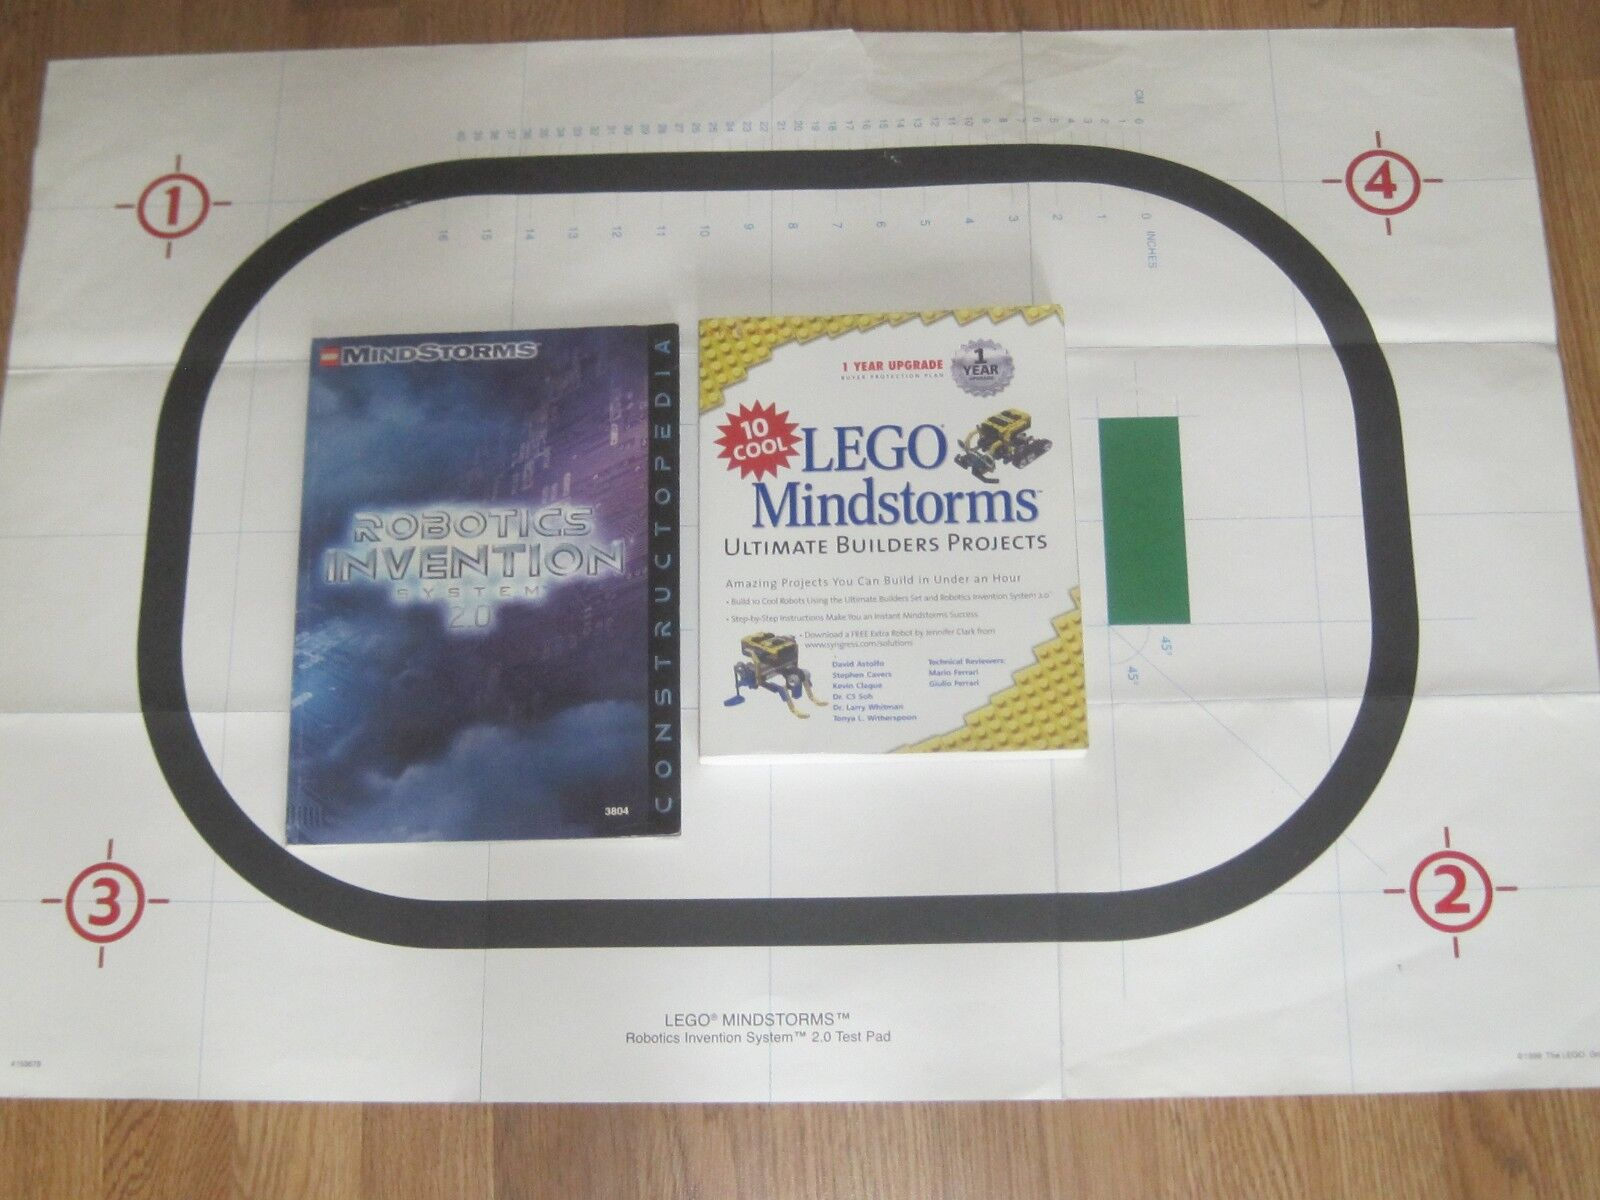 LEGO Mindstorms Ultimate Builders Projects-Constructopedia-Test Pad 2 0